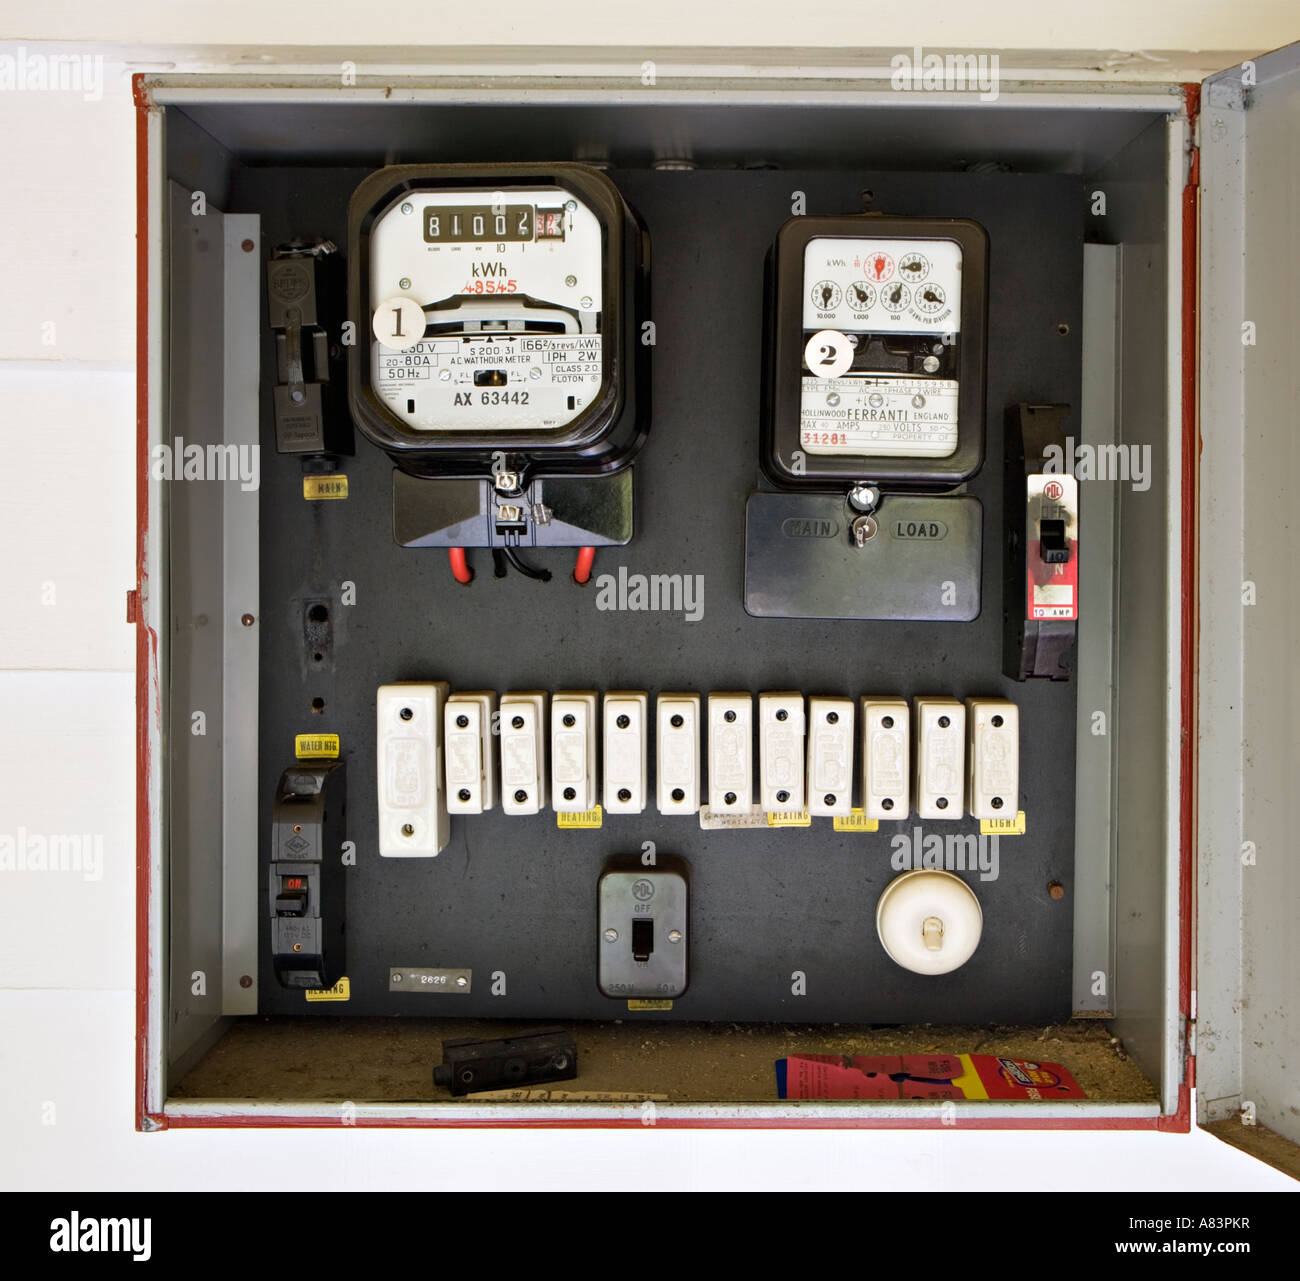 Deutsch Fuse Box Auto Electrical Wiring Diagram Toro Timecutter Ss4235 Electricity Meter In With Old Style Fuses Circa 1962